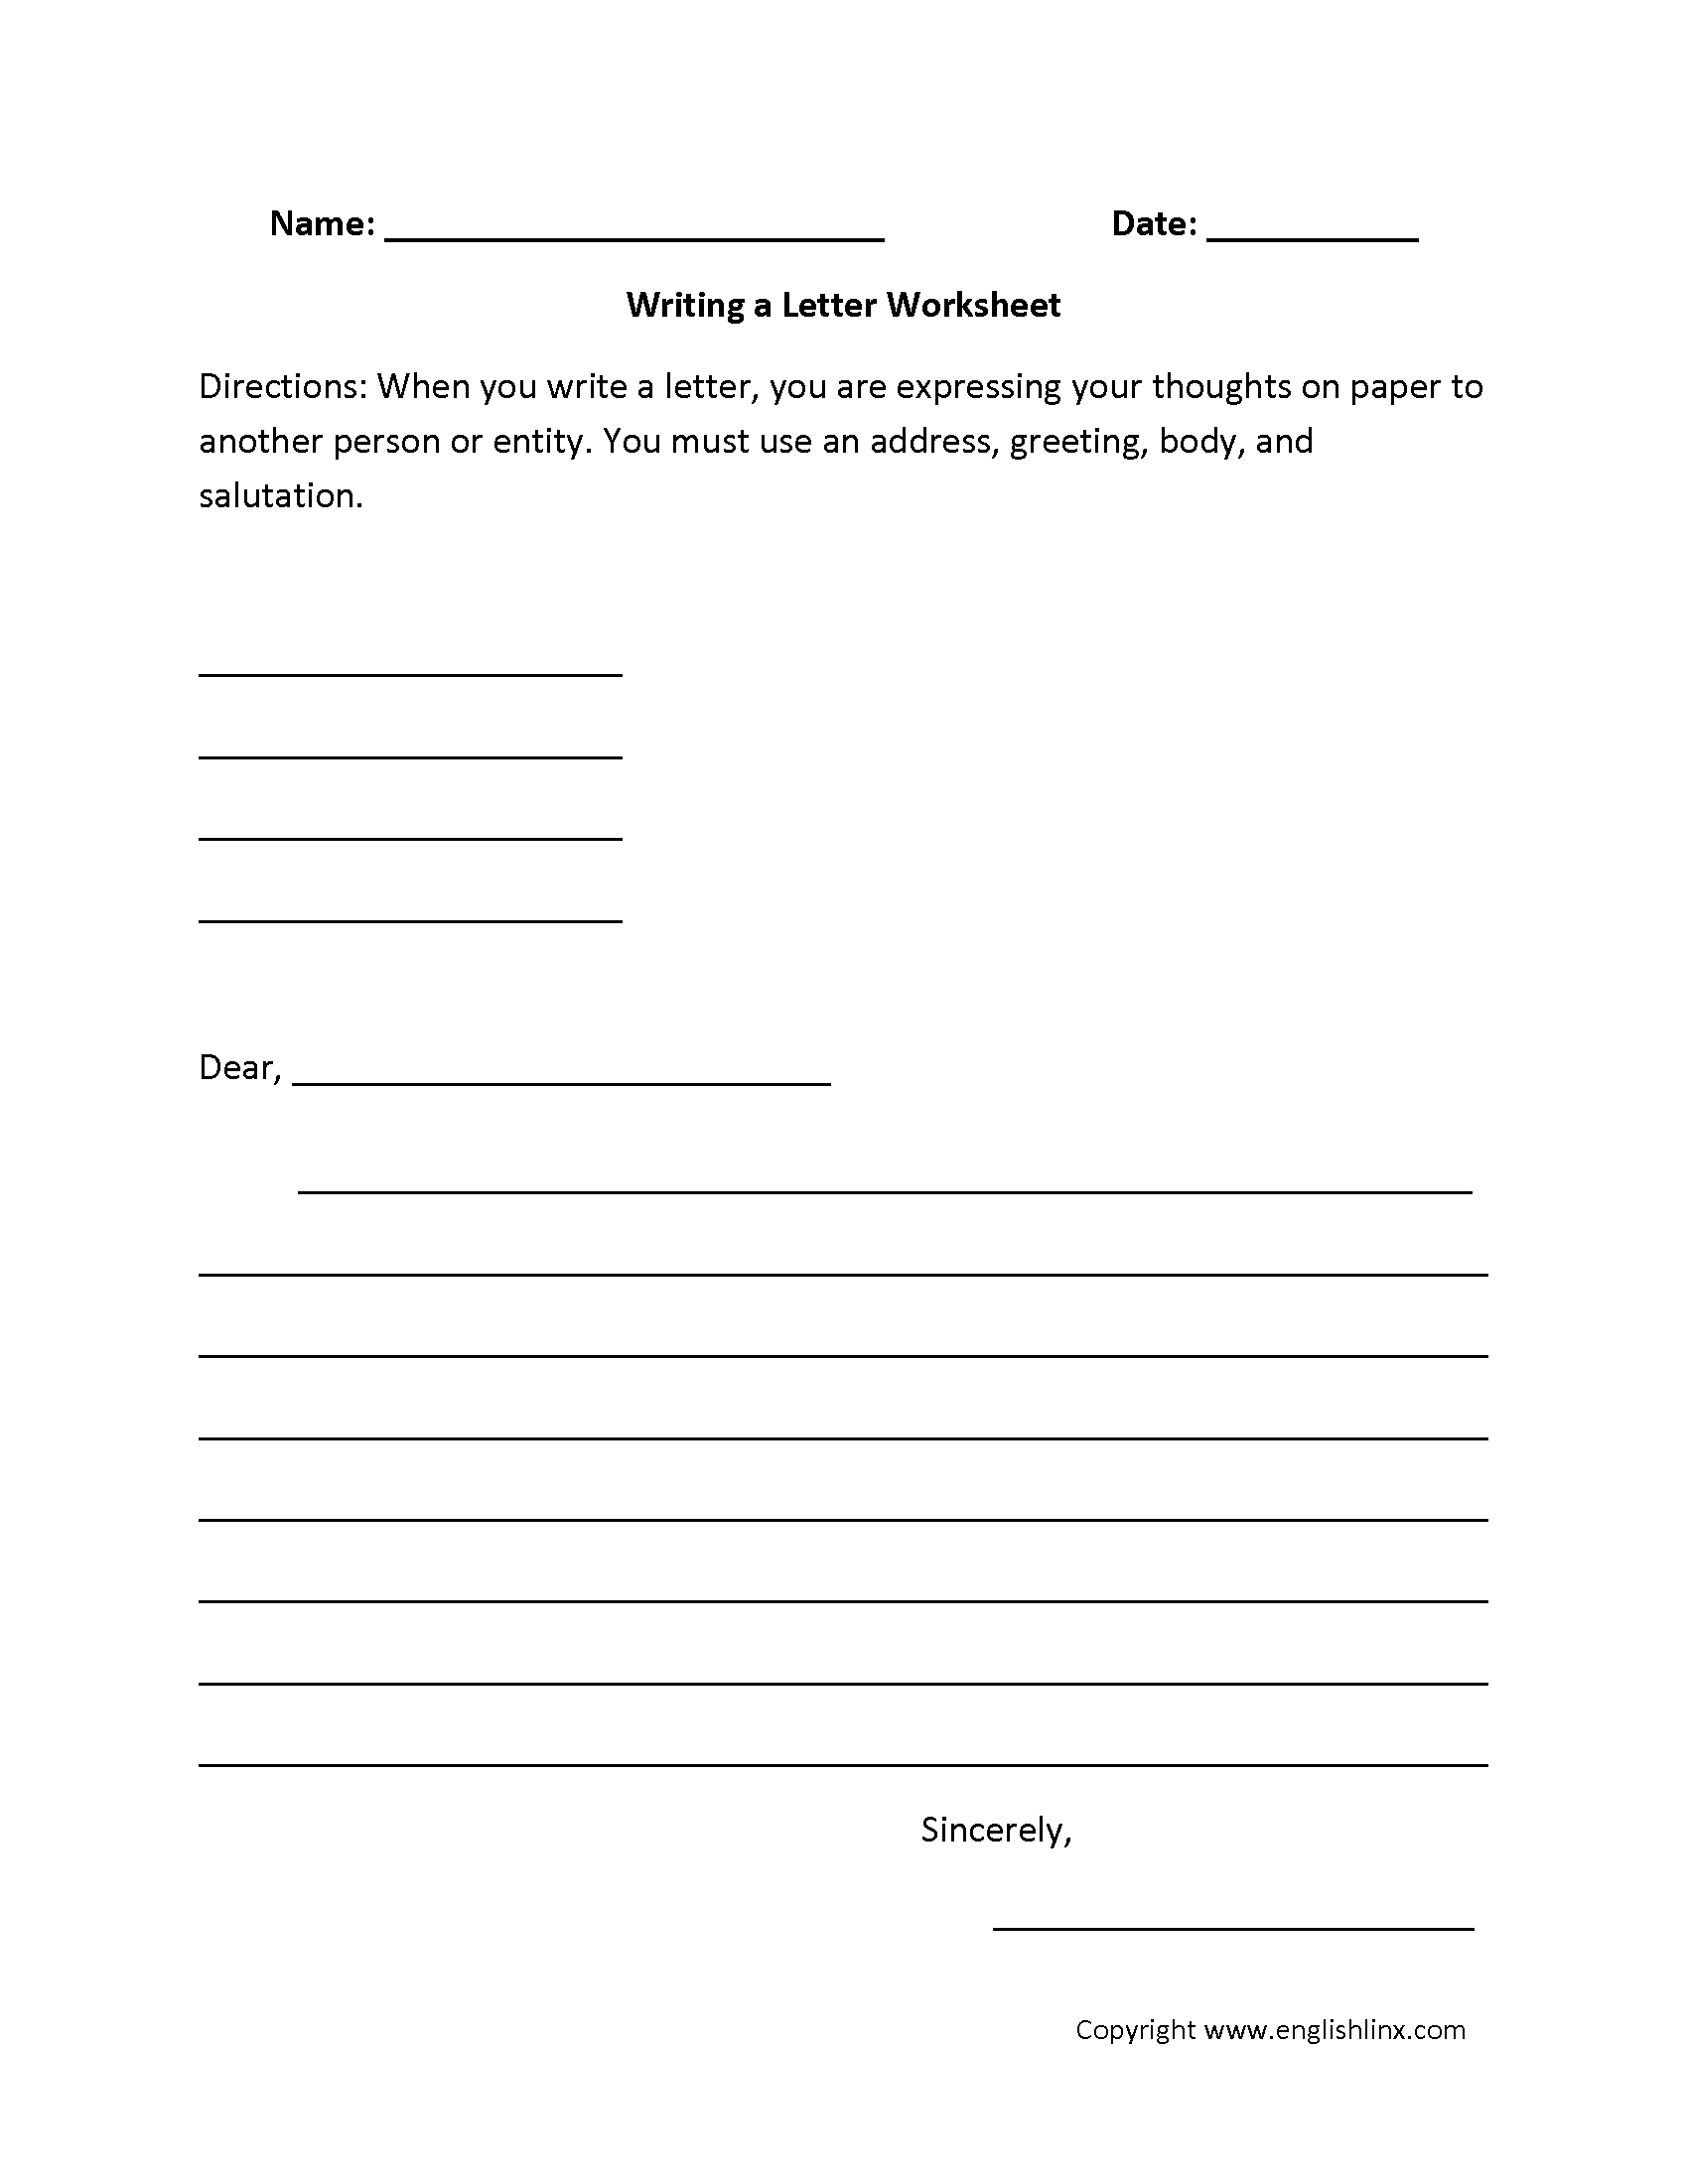 Worksheets 8th Grade Writing Worksheets englishlinx com writing worksheets a letter worksheet